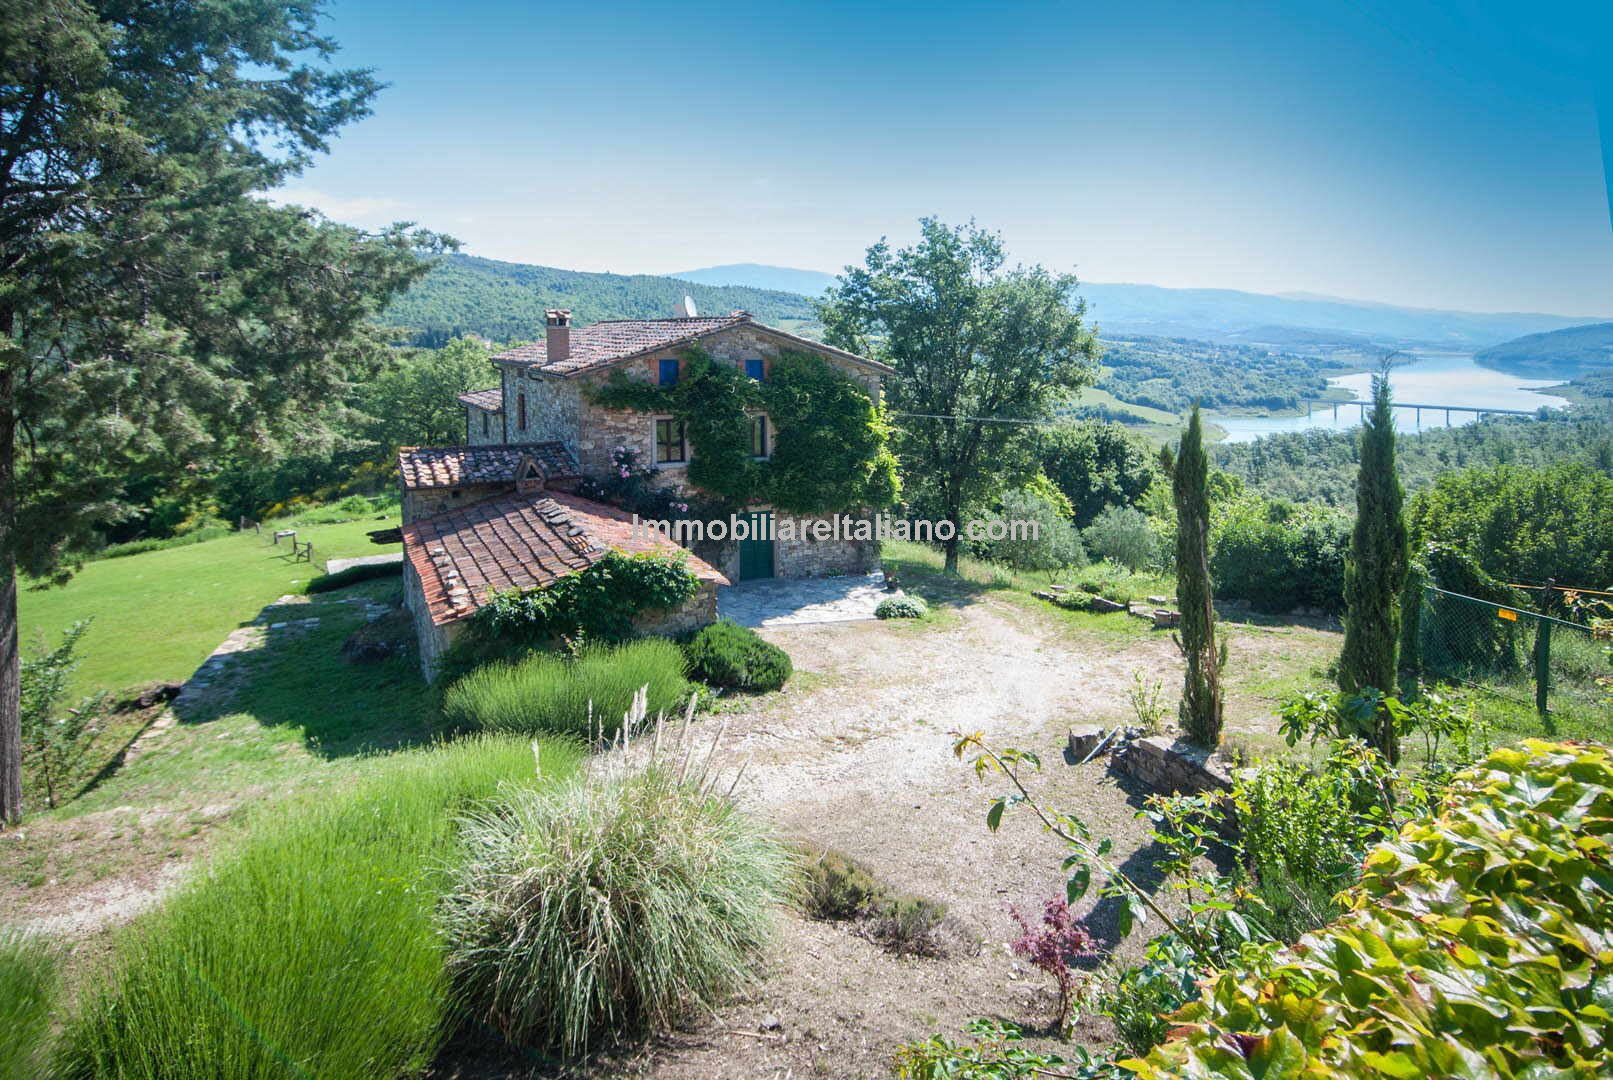 A pair of farmhouses for sale in Tuscany near Caprese Michelangelo overlooking Lake Montedoglio, available for sale together or separately. The villa farmhouse has 5 bedrooms and the larger farmhouse has 6 bedrooms.